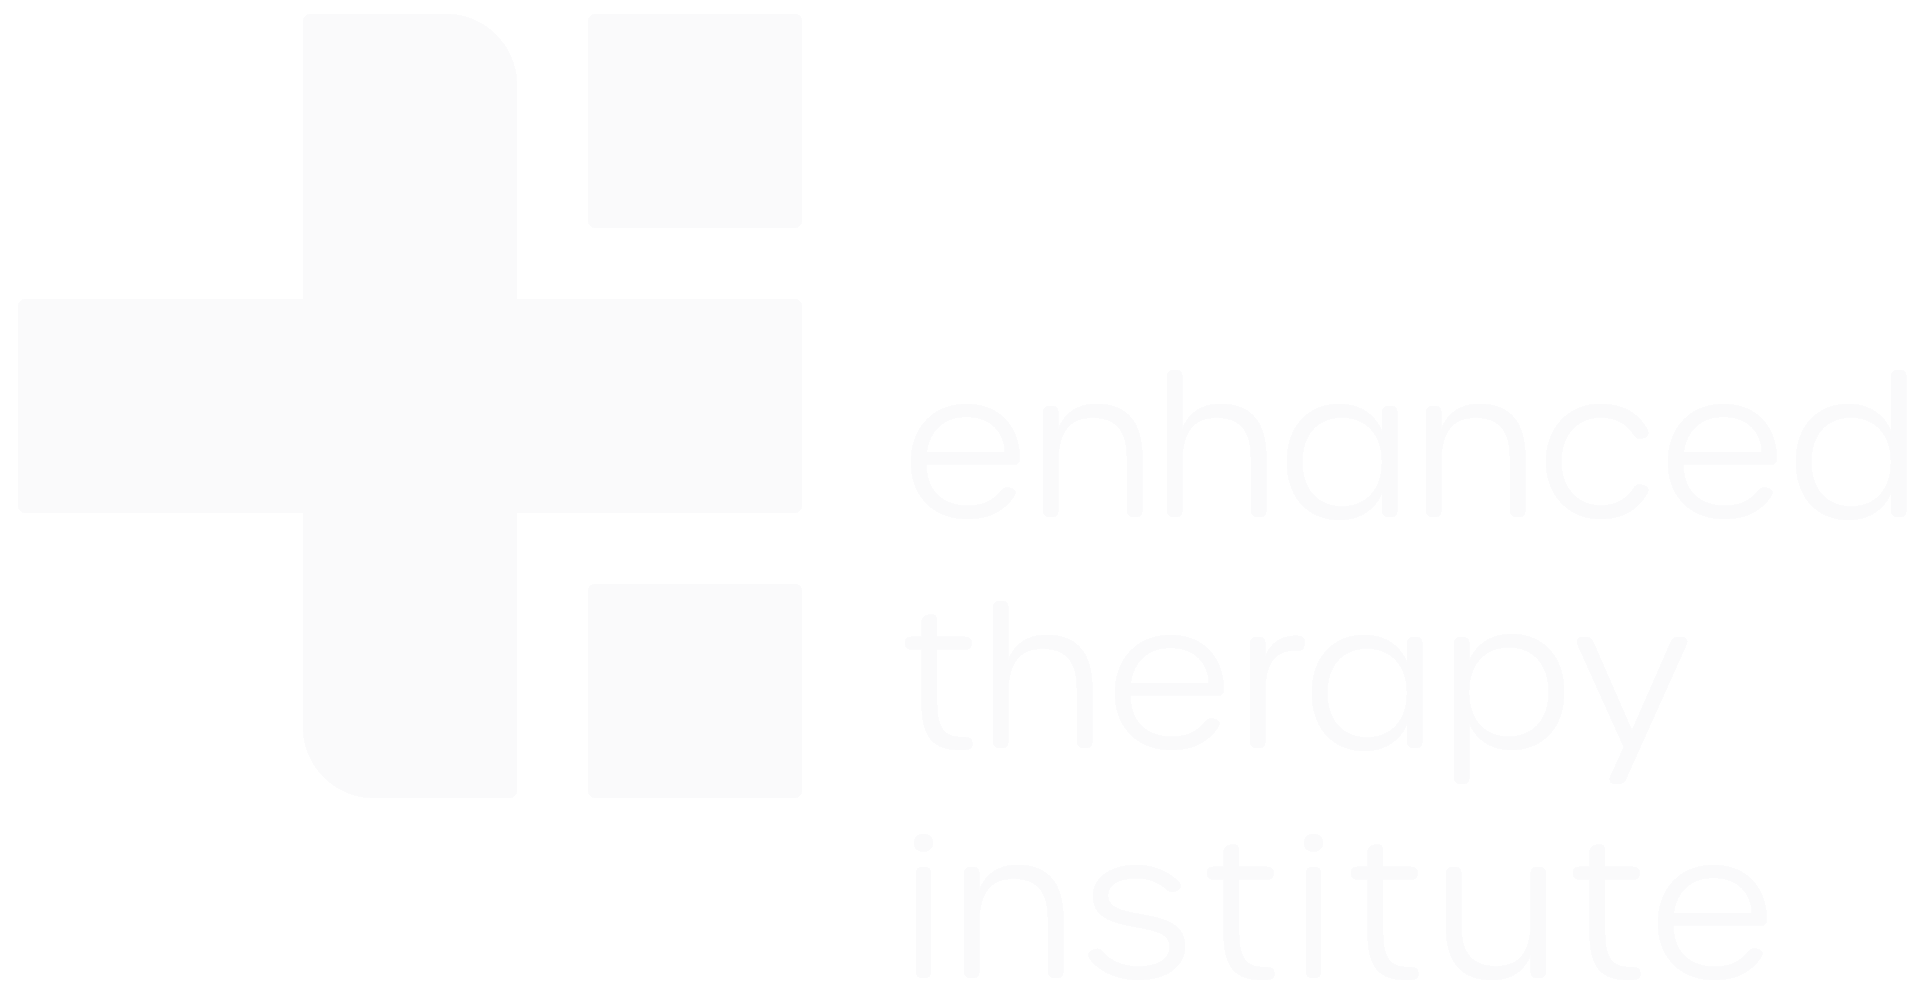 ENHANCED THERAPY INSTITUTE LOGO